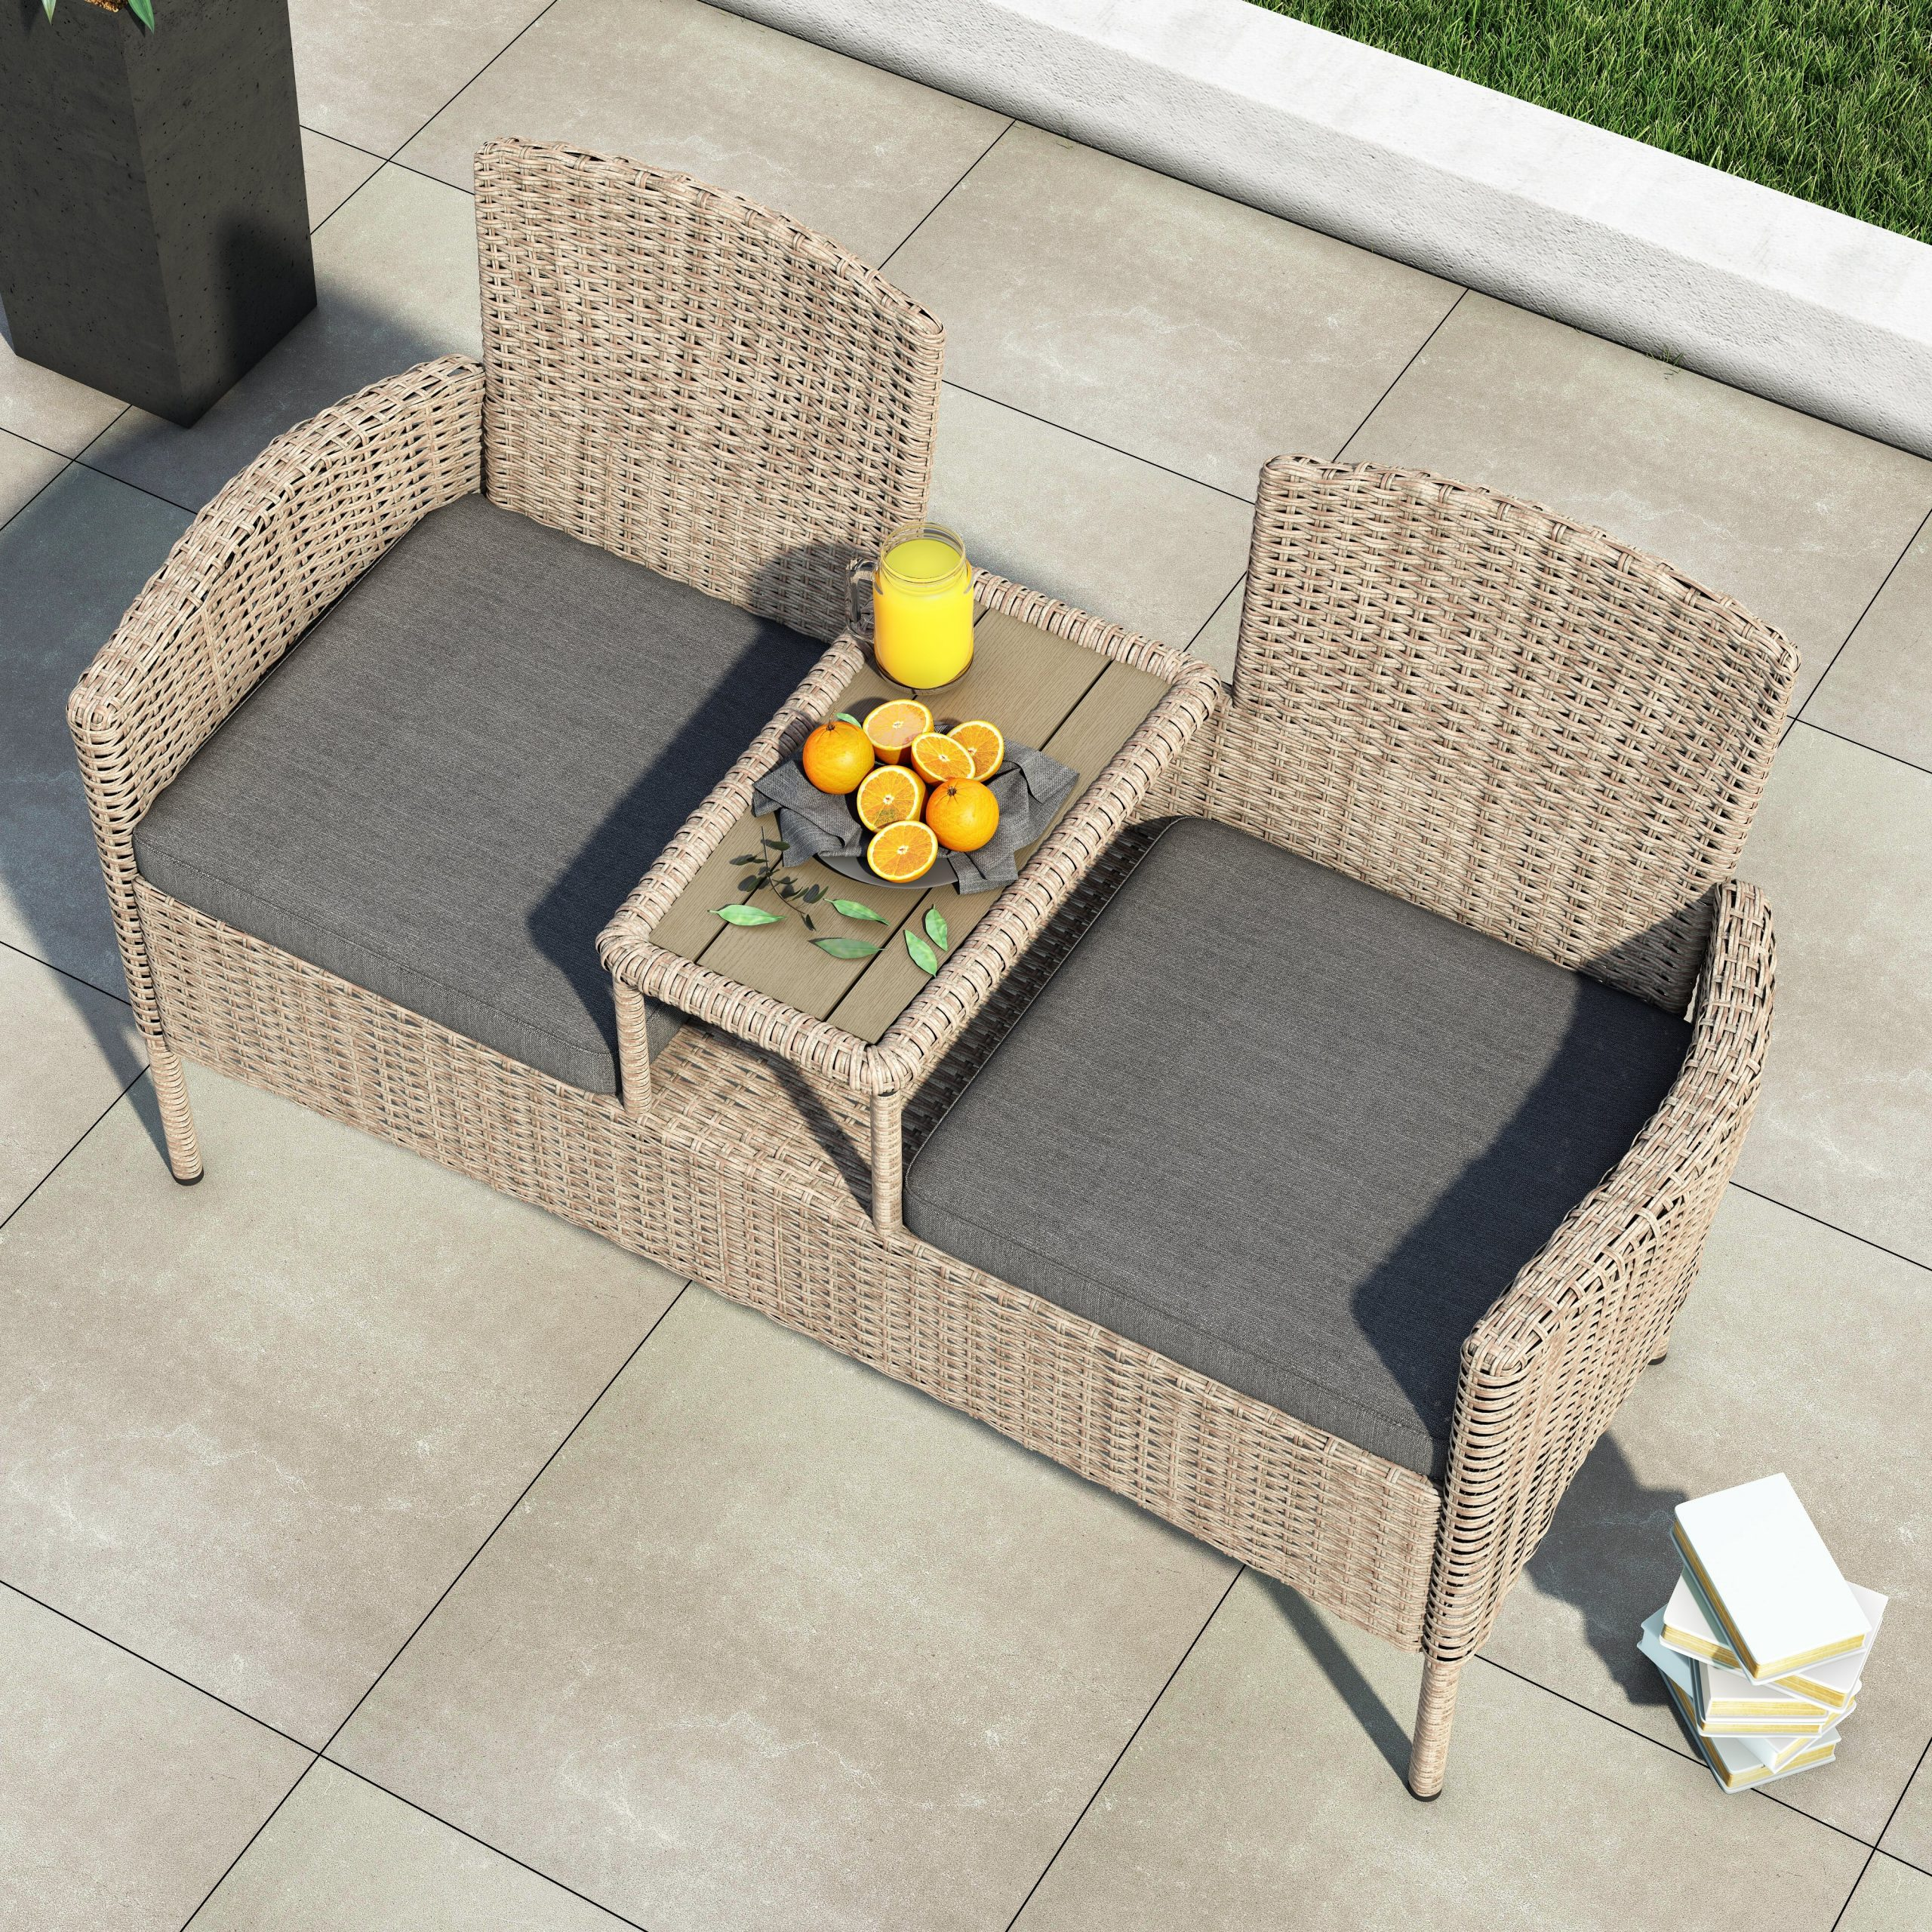 Wicker Tete A Tete Bench With 2019 Lublin Wicker Tete A Tete Benches (View 4 of 30)